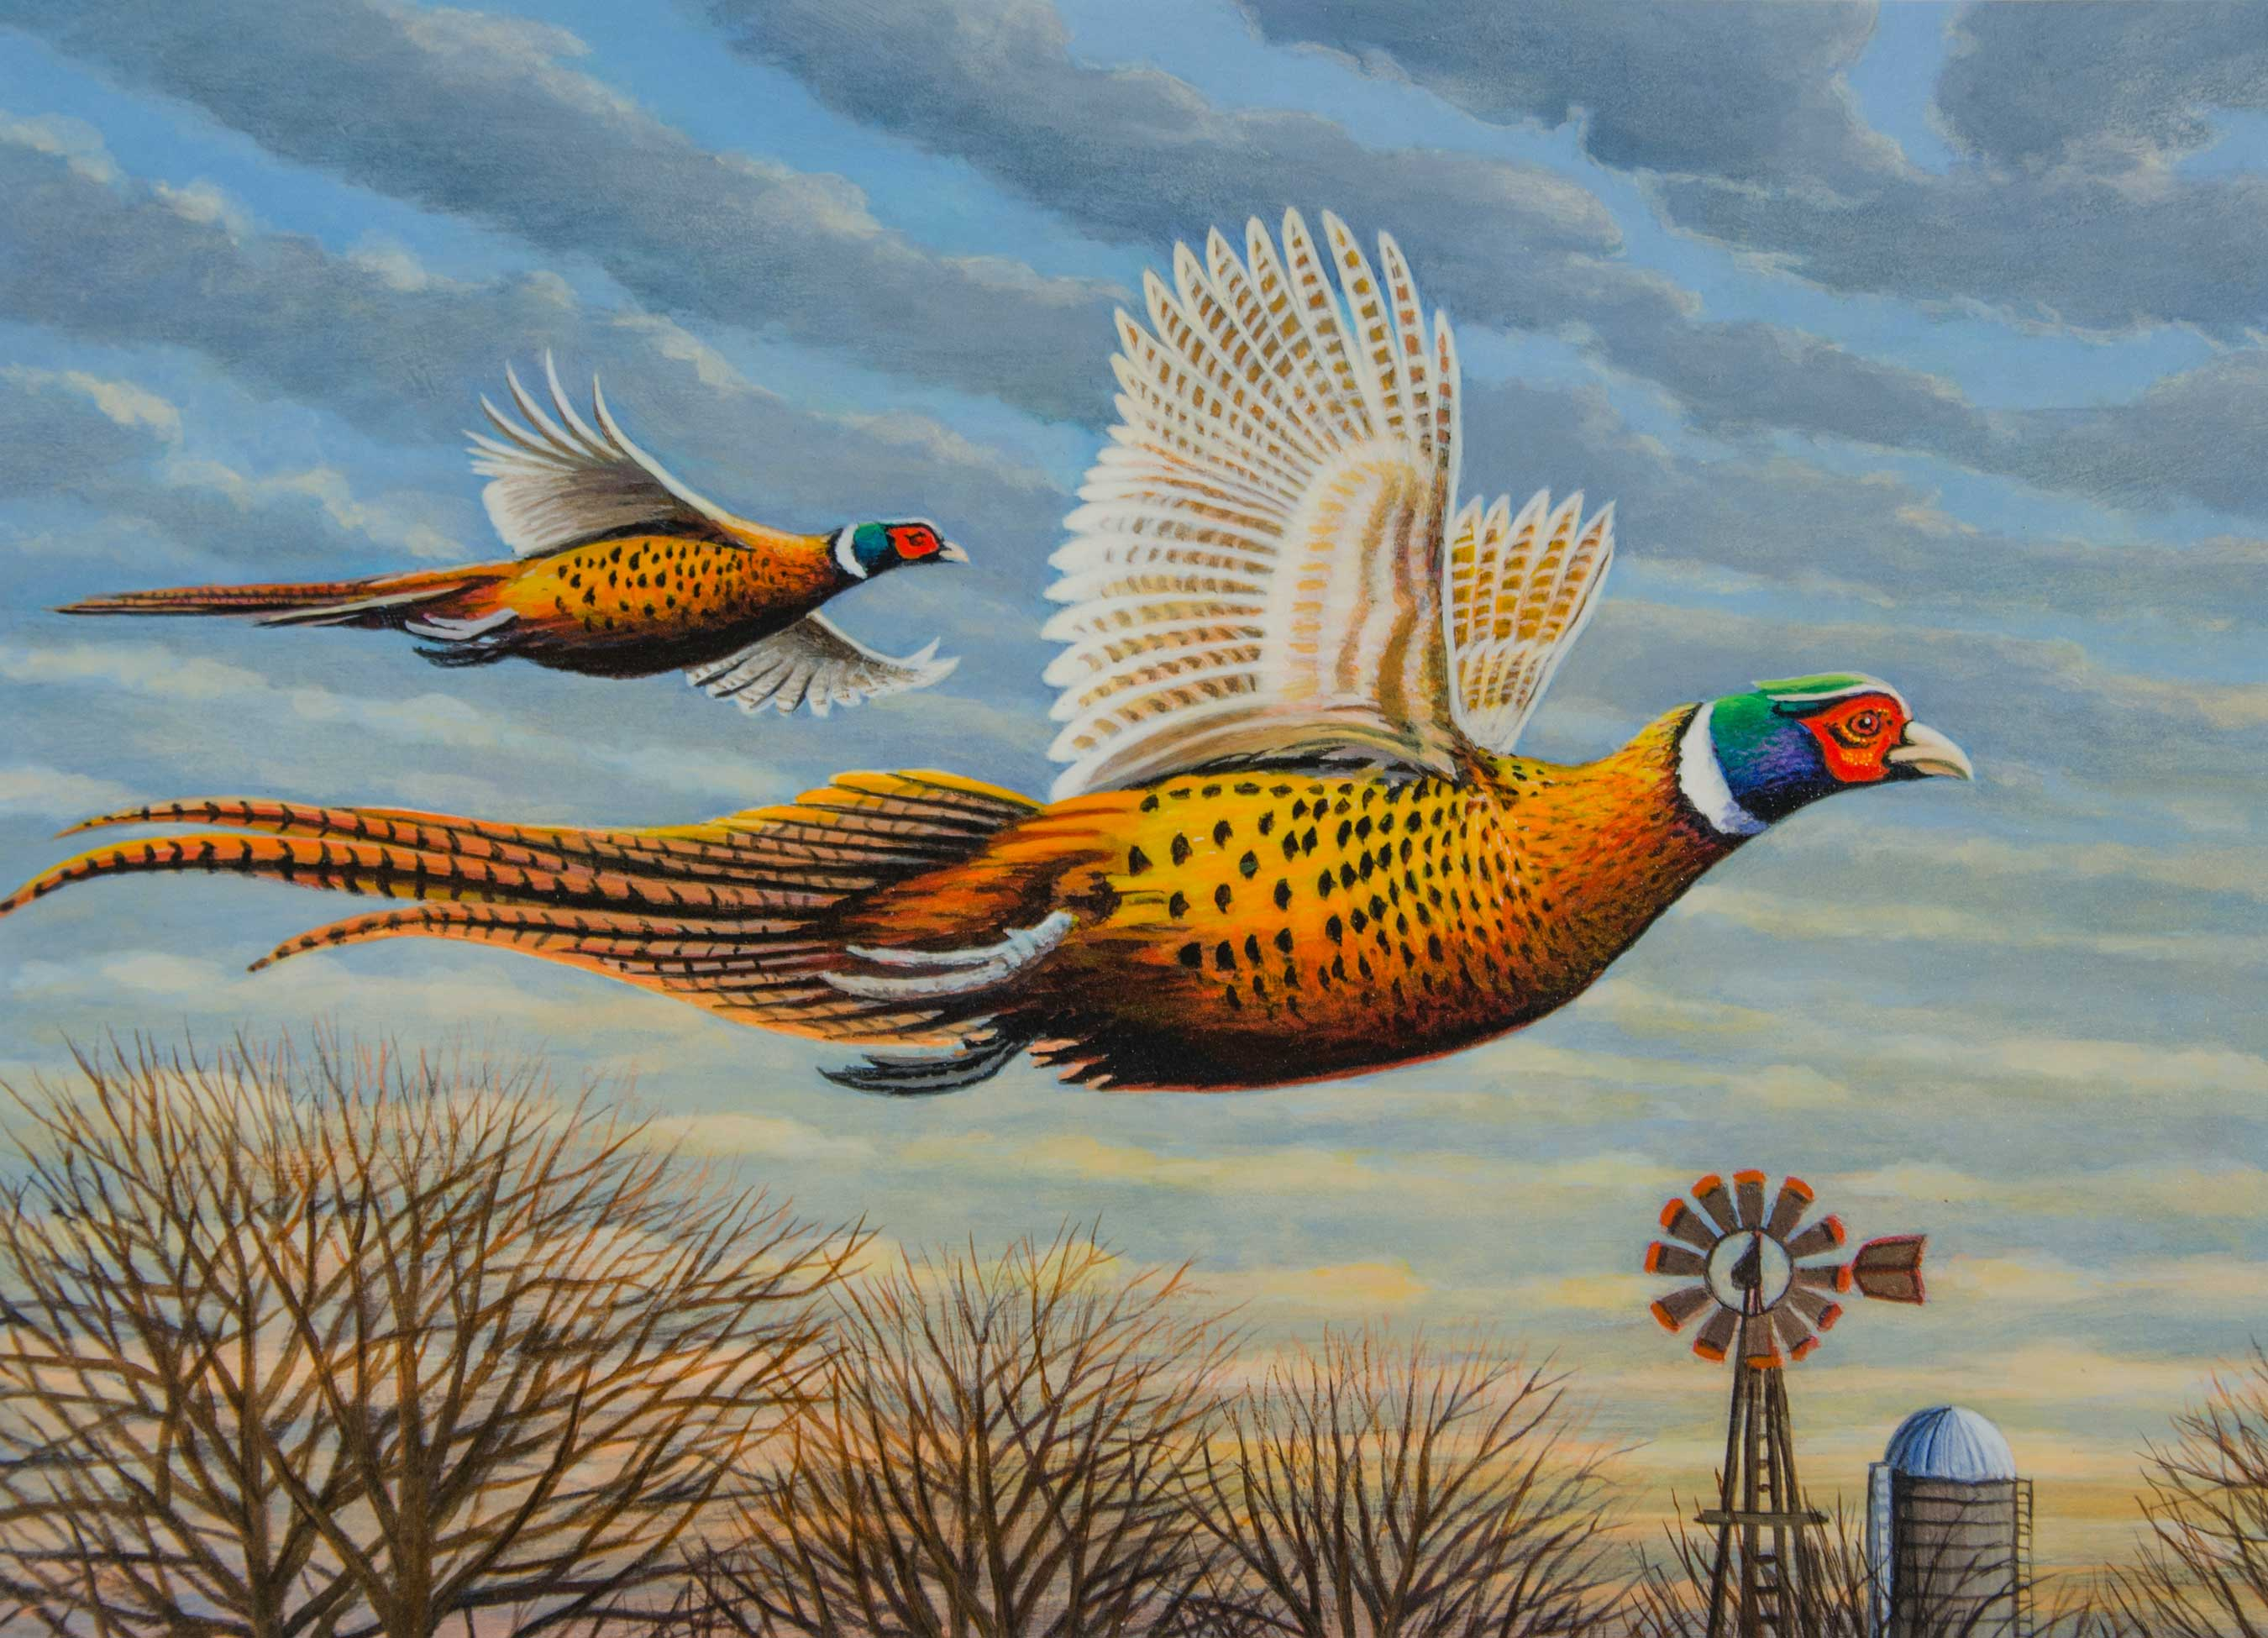 The 2020 pheasant stamp